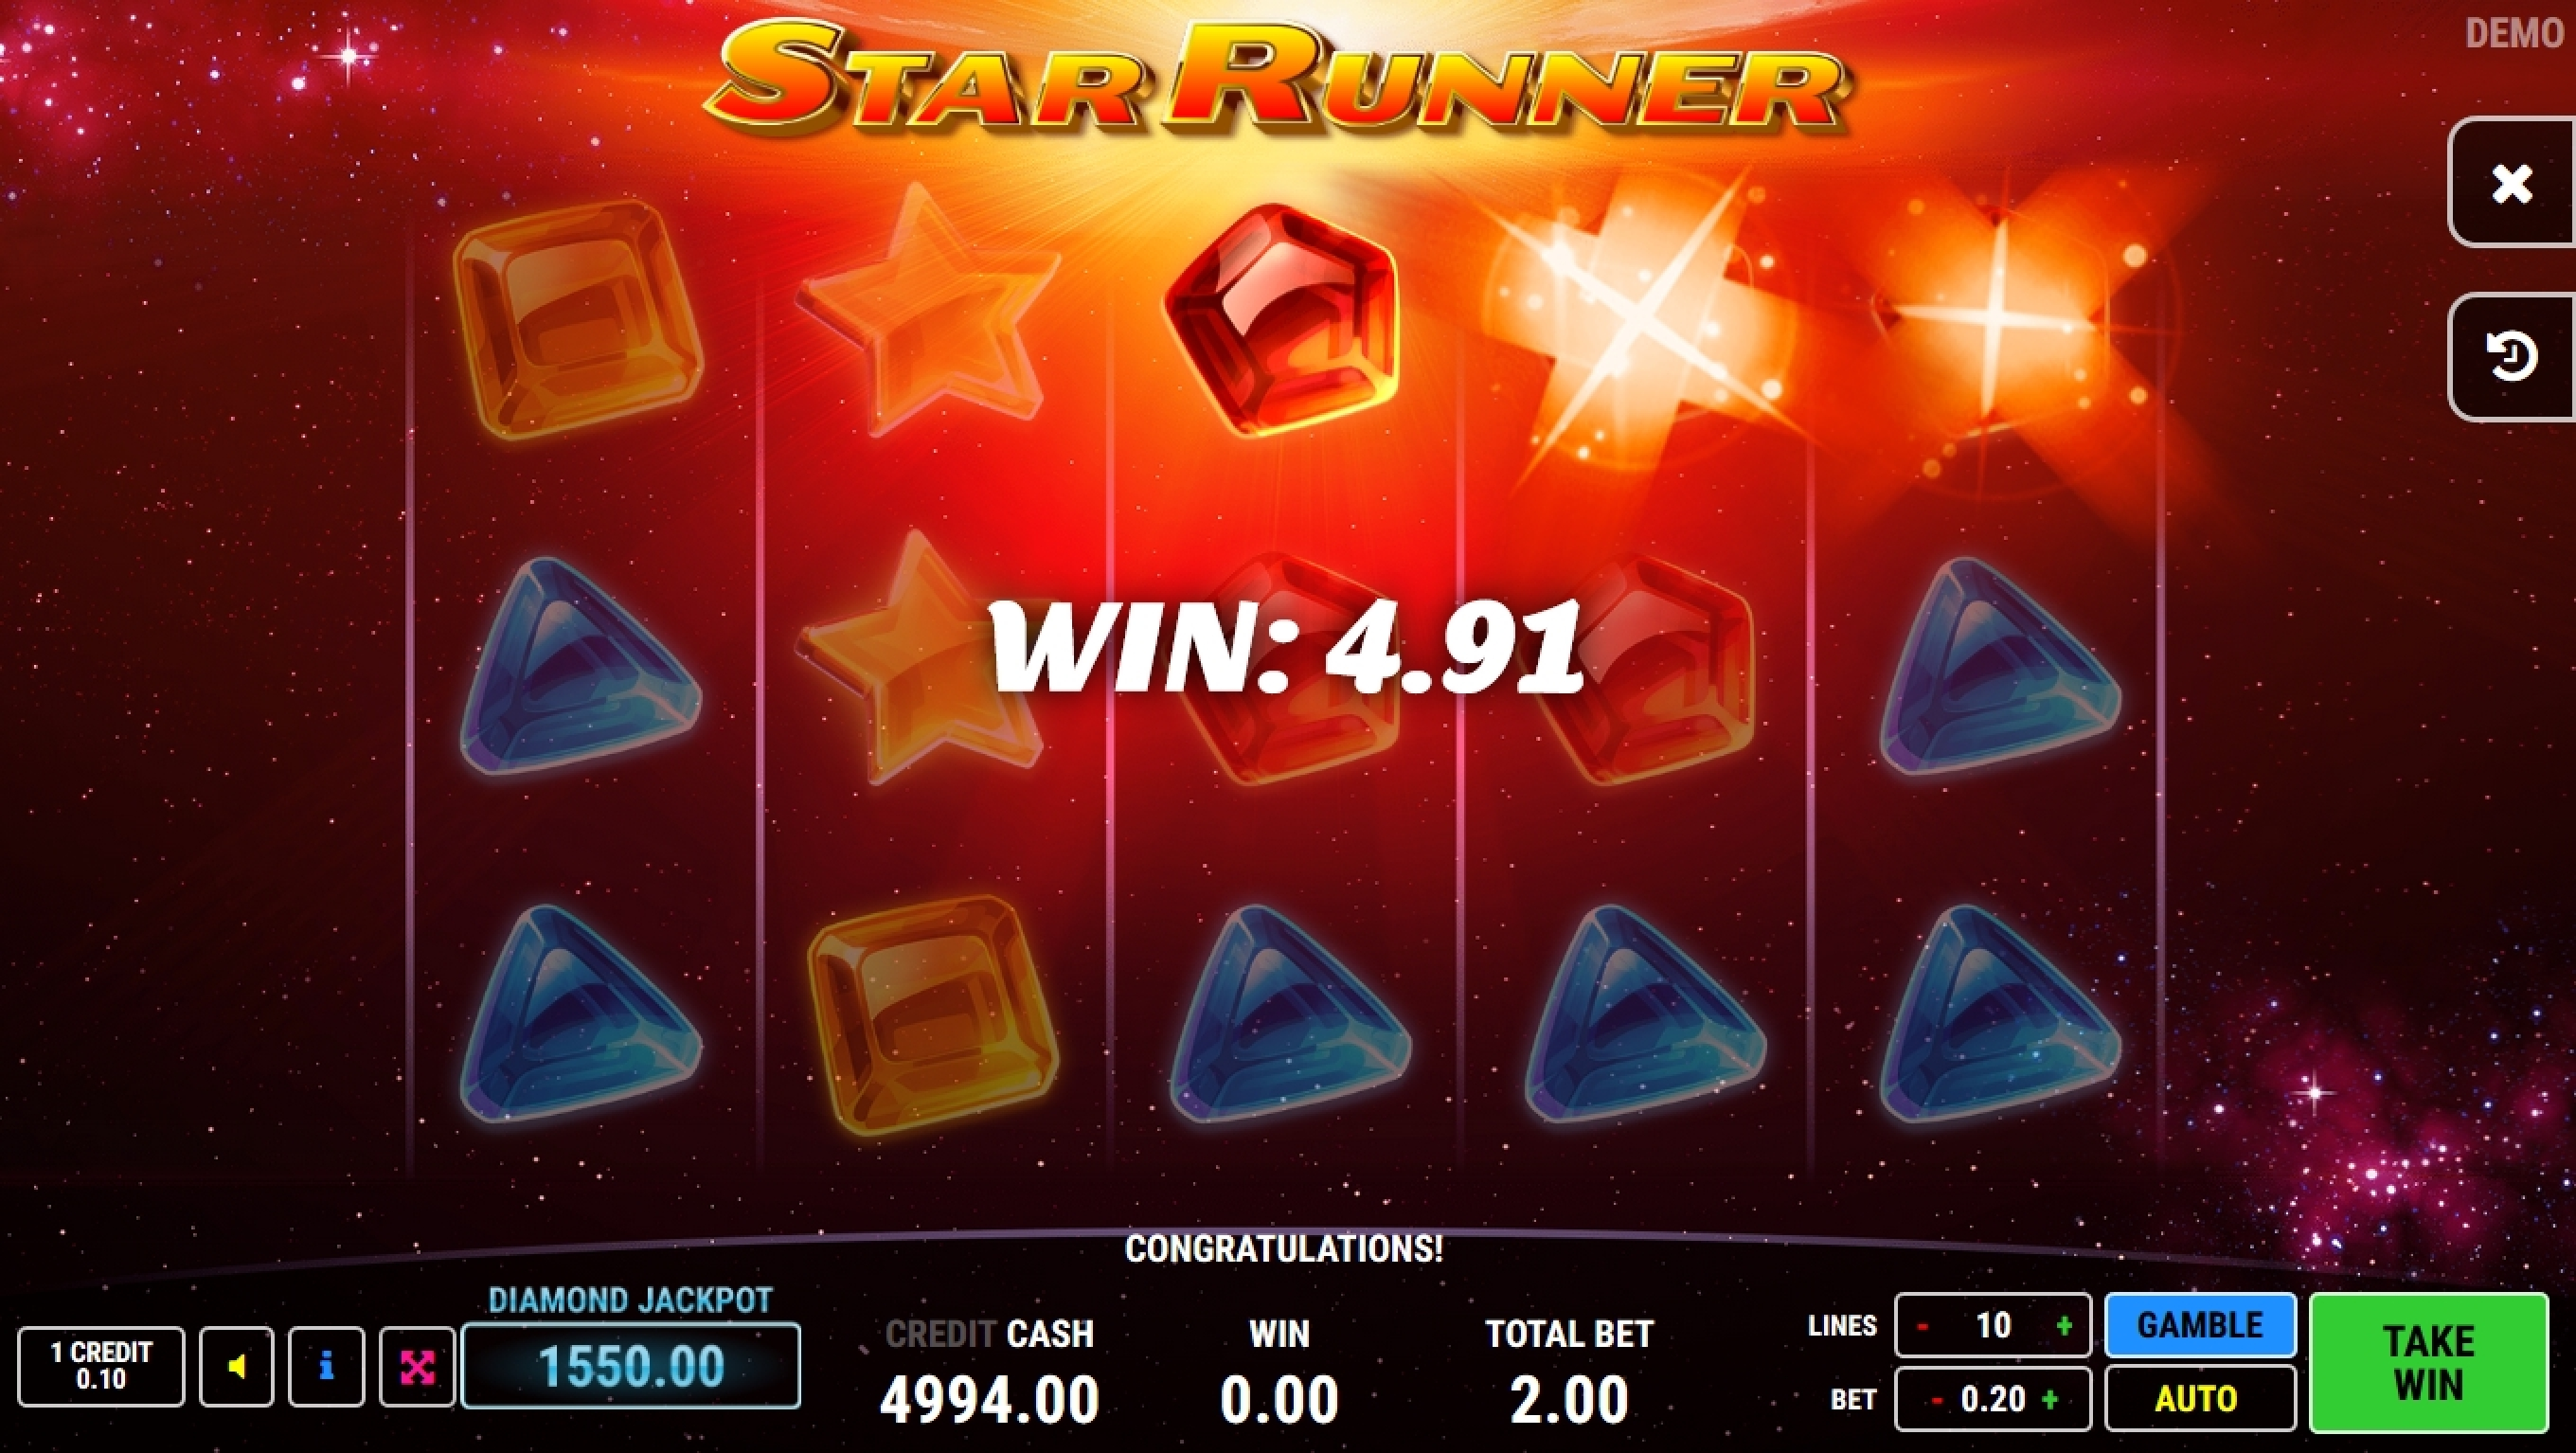 Win Money in Star Runner Free Slot Game by Fazi Gaming